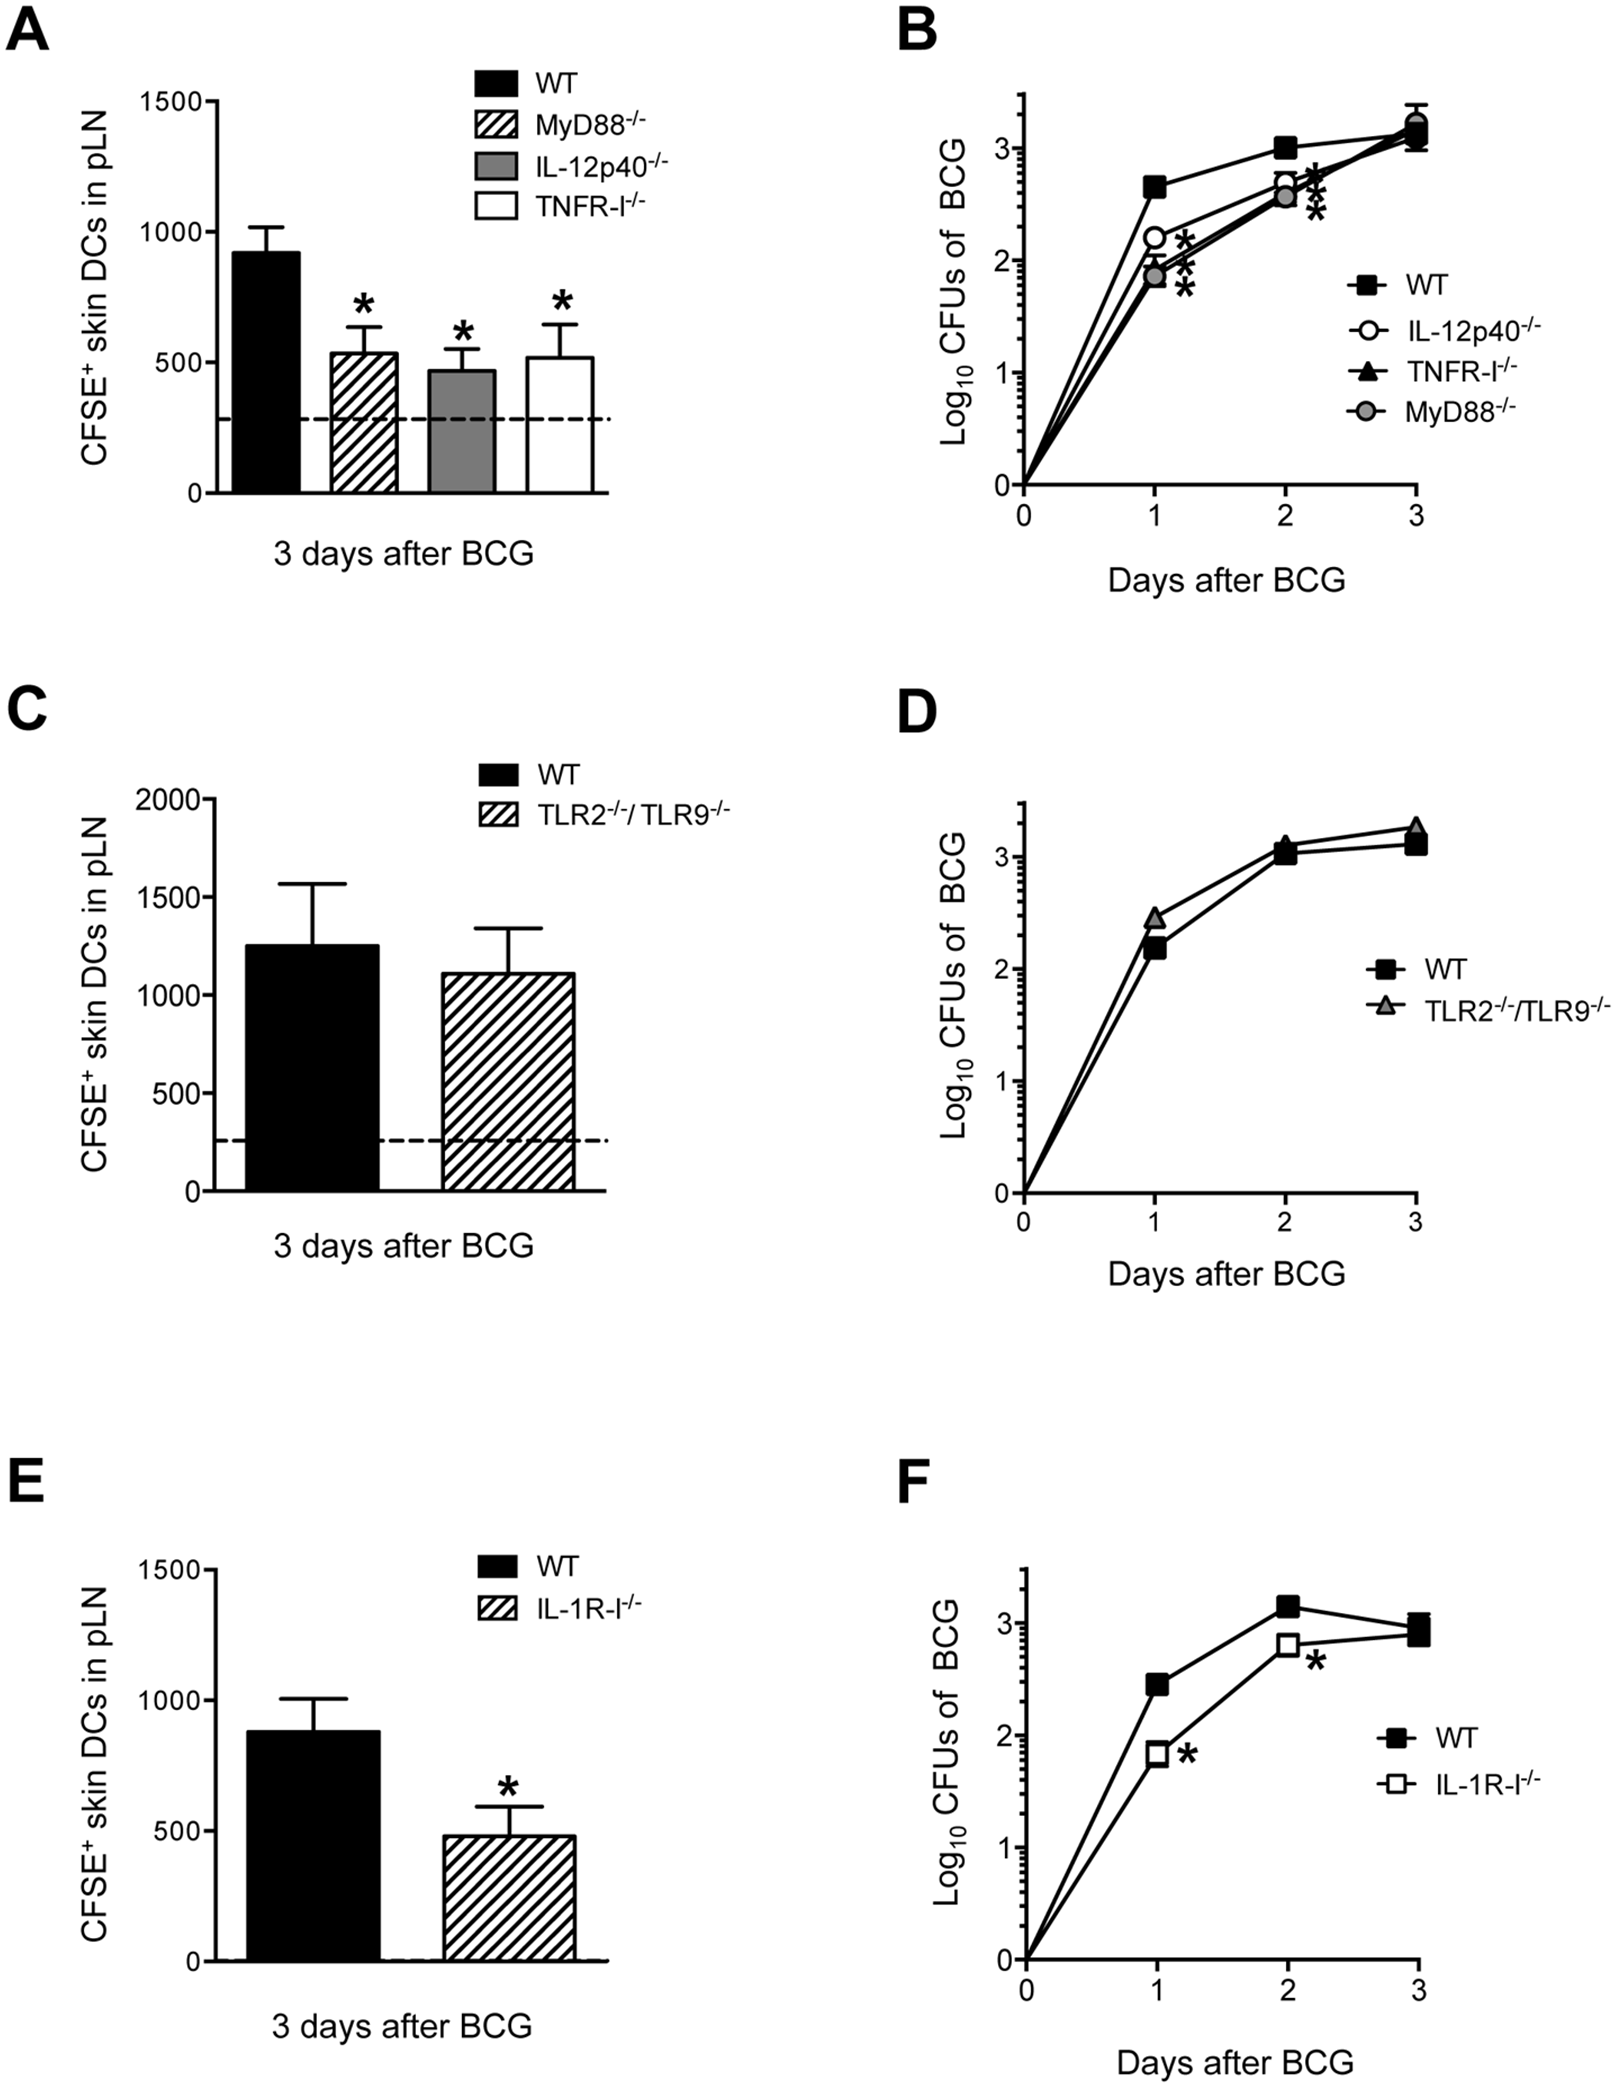 MyD88, IL-12p40, TNFR-I and IL-1R-I regulate entry of skin DCs and BCG into DLN.